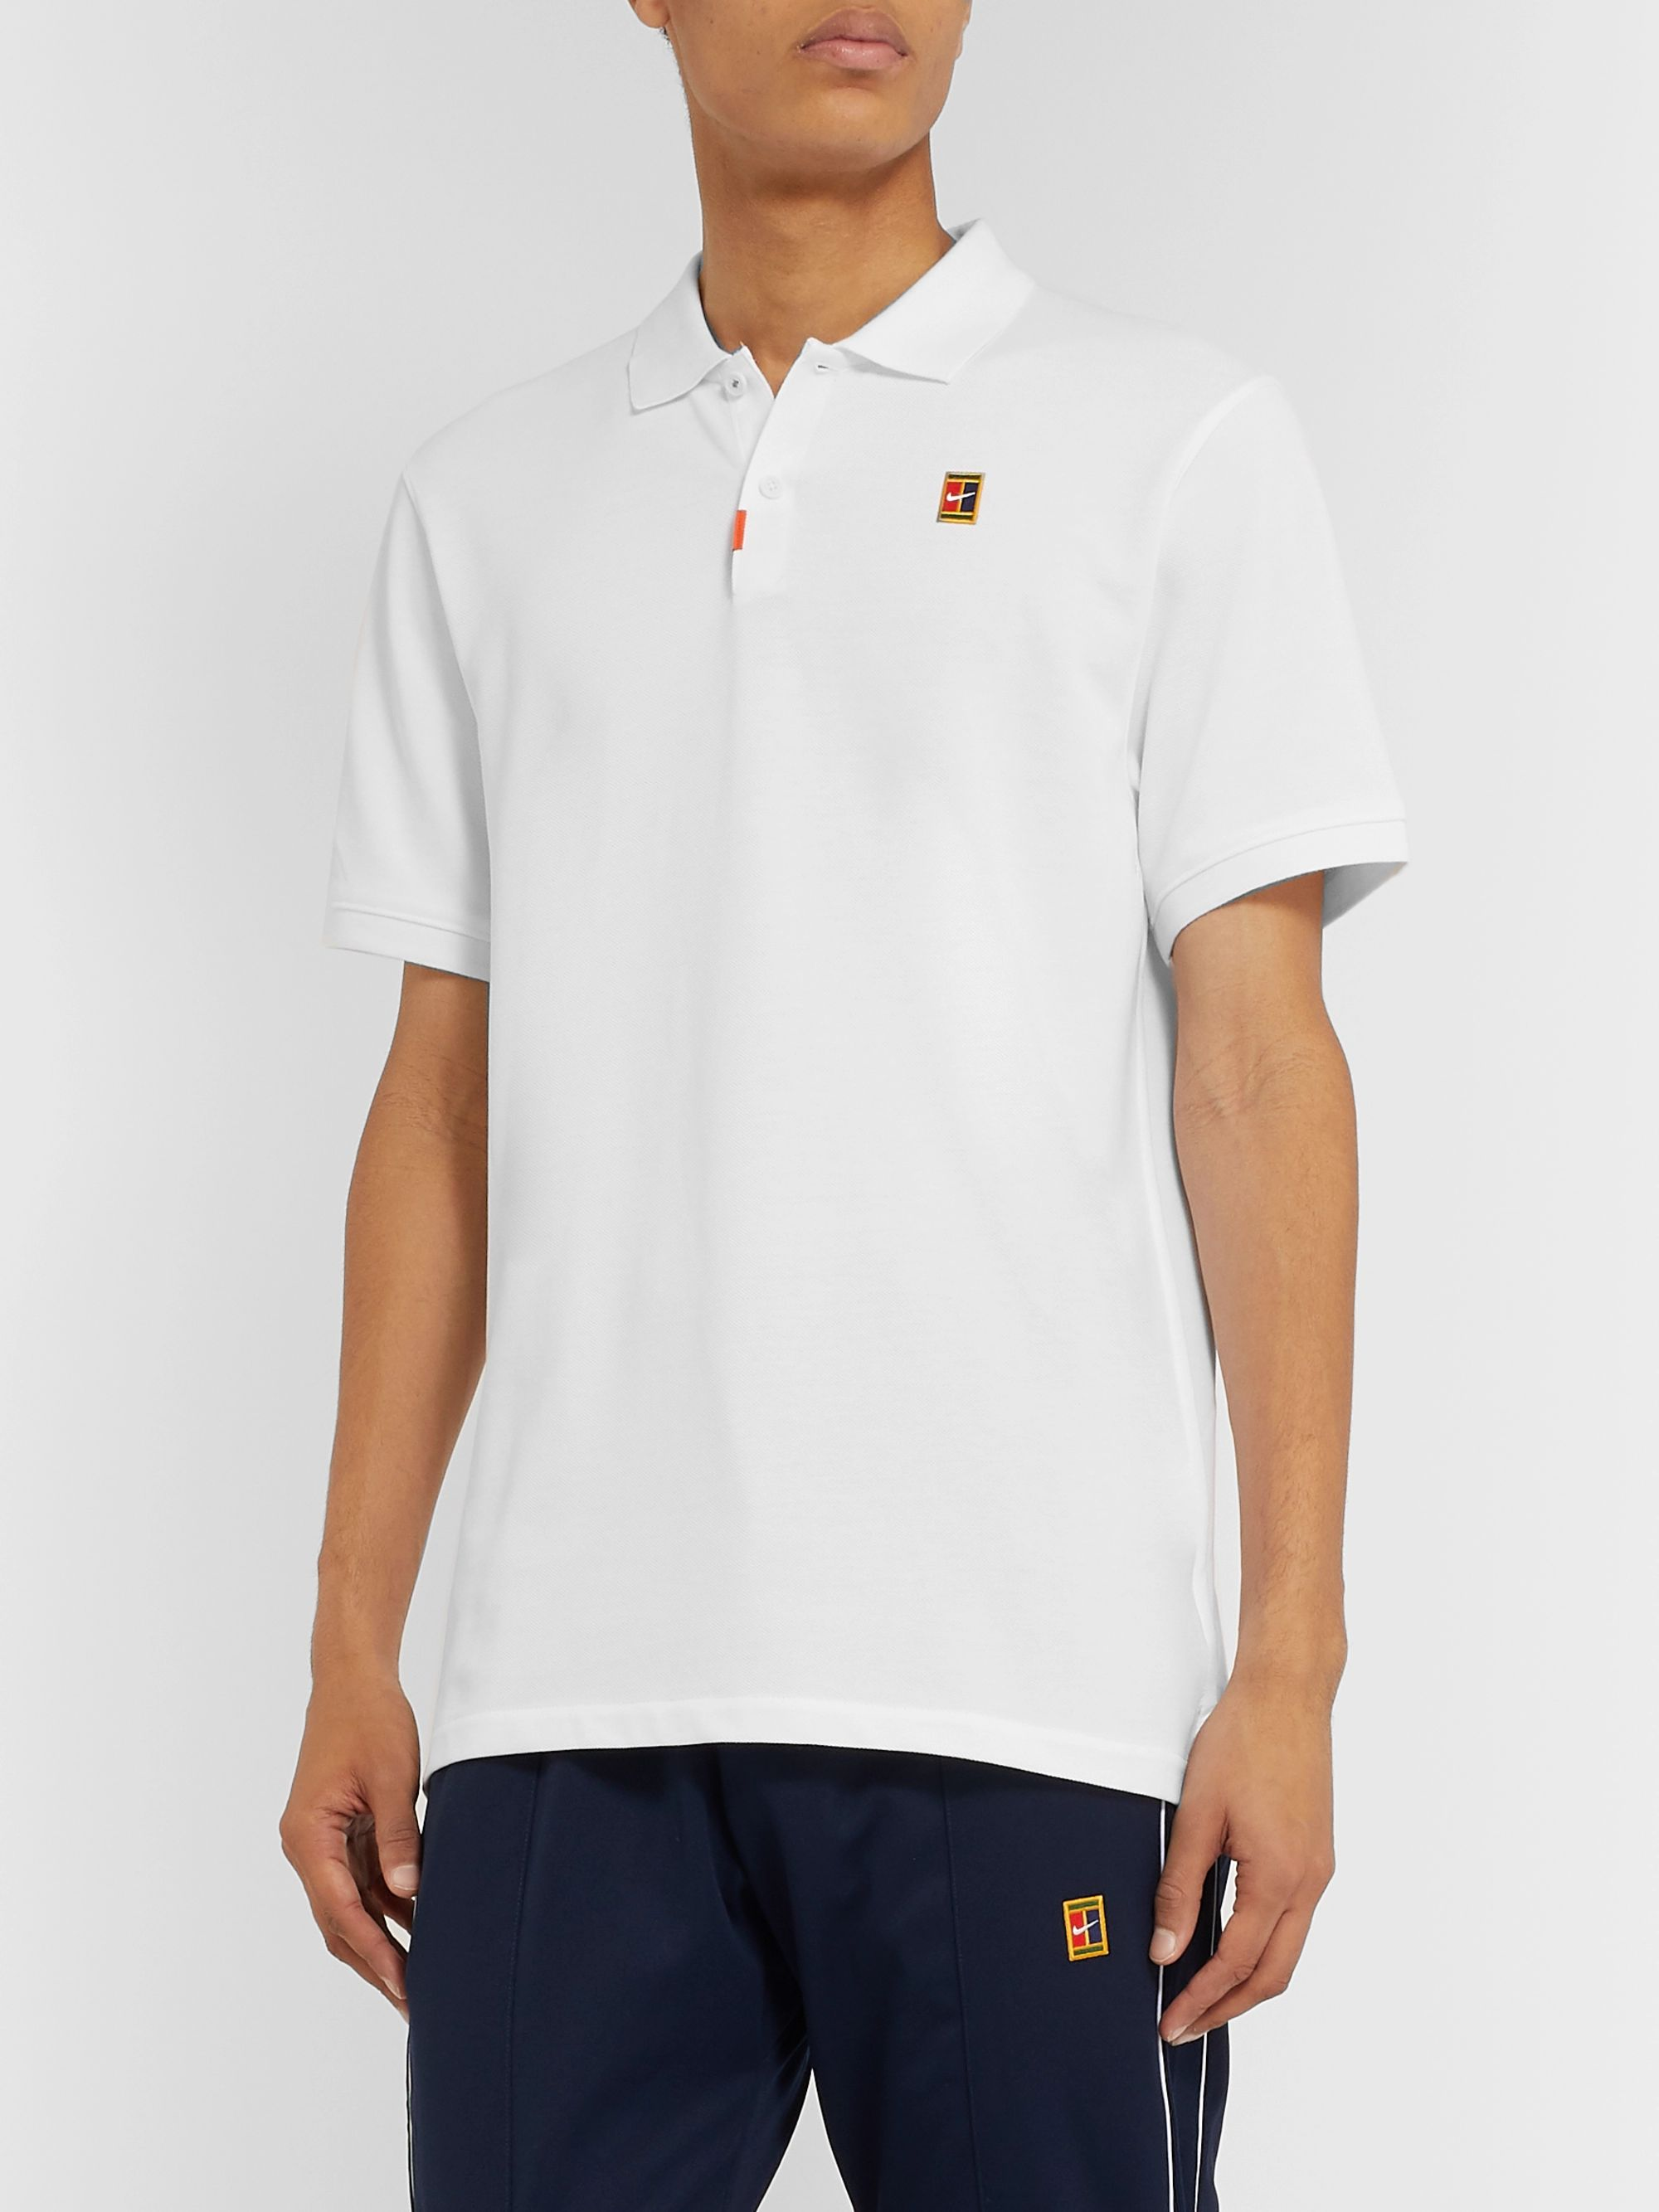 Nike Tennis Heritage Cotton-Blend Piqué Tennis Polo Shirt